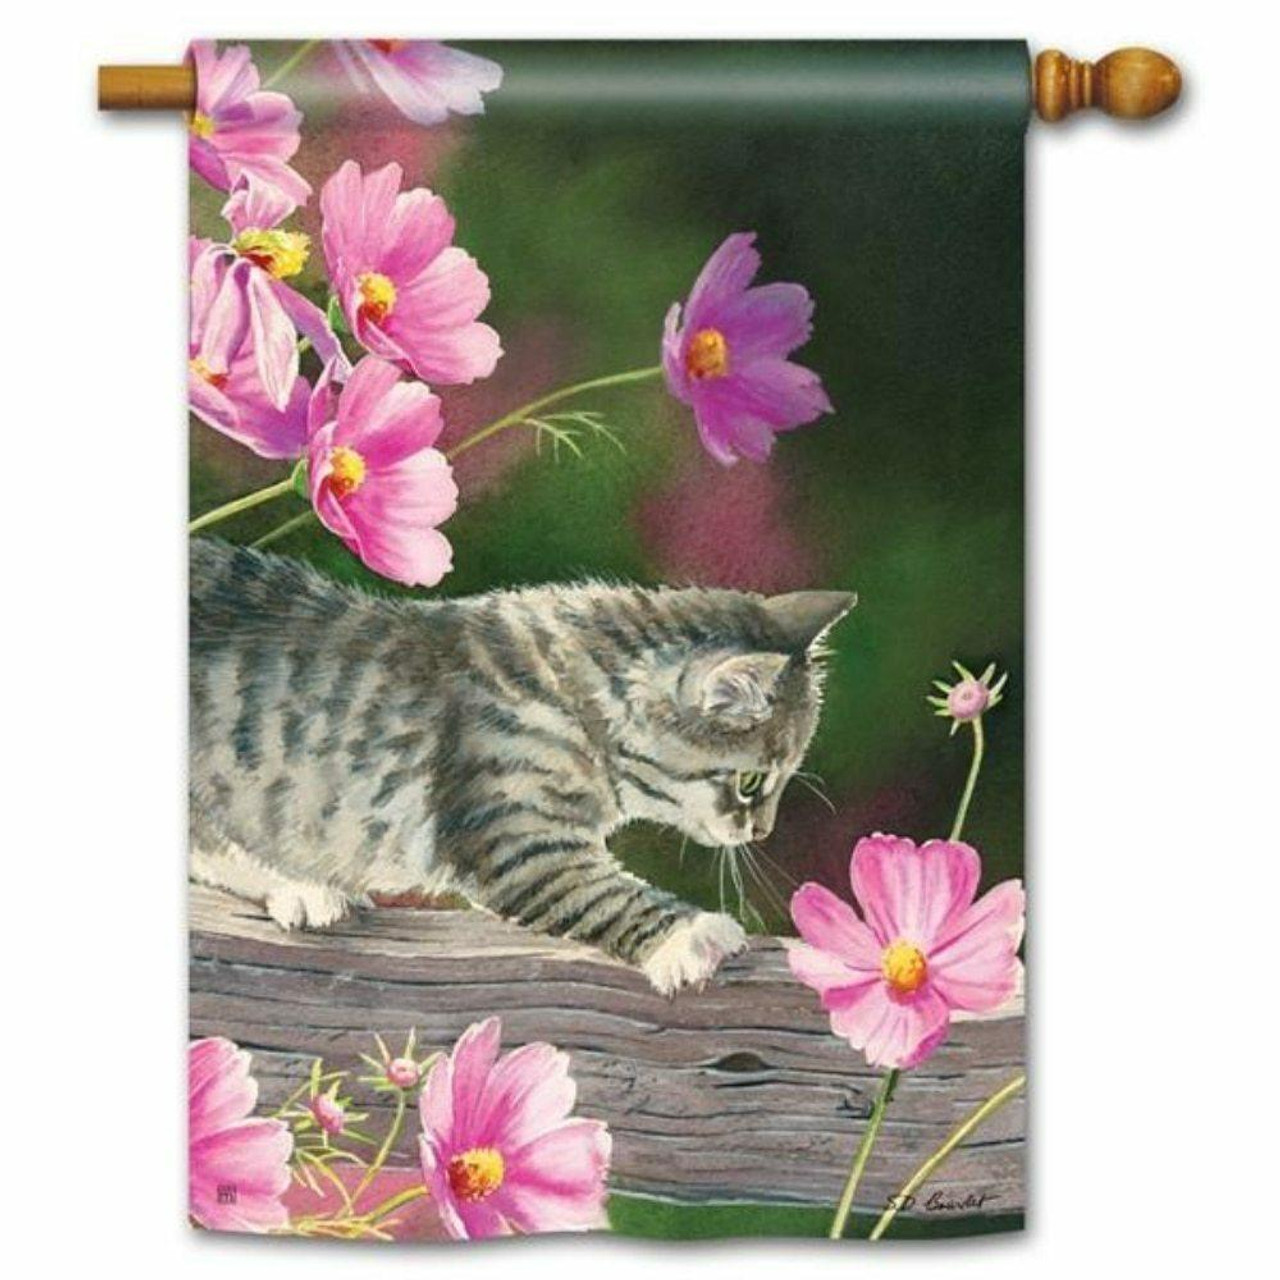 This curious kitty flag has a gray kitten curiously looking at a pink flower with other flowers in the distance.